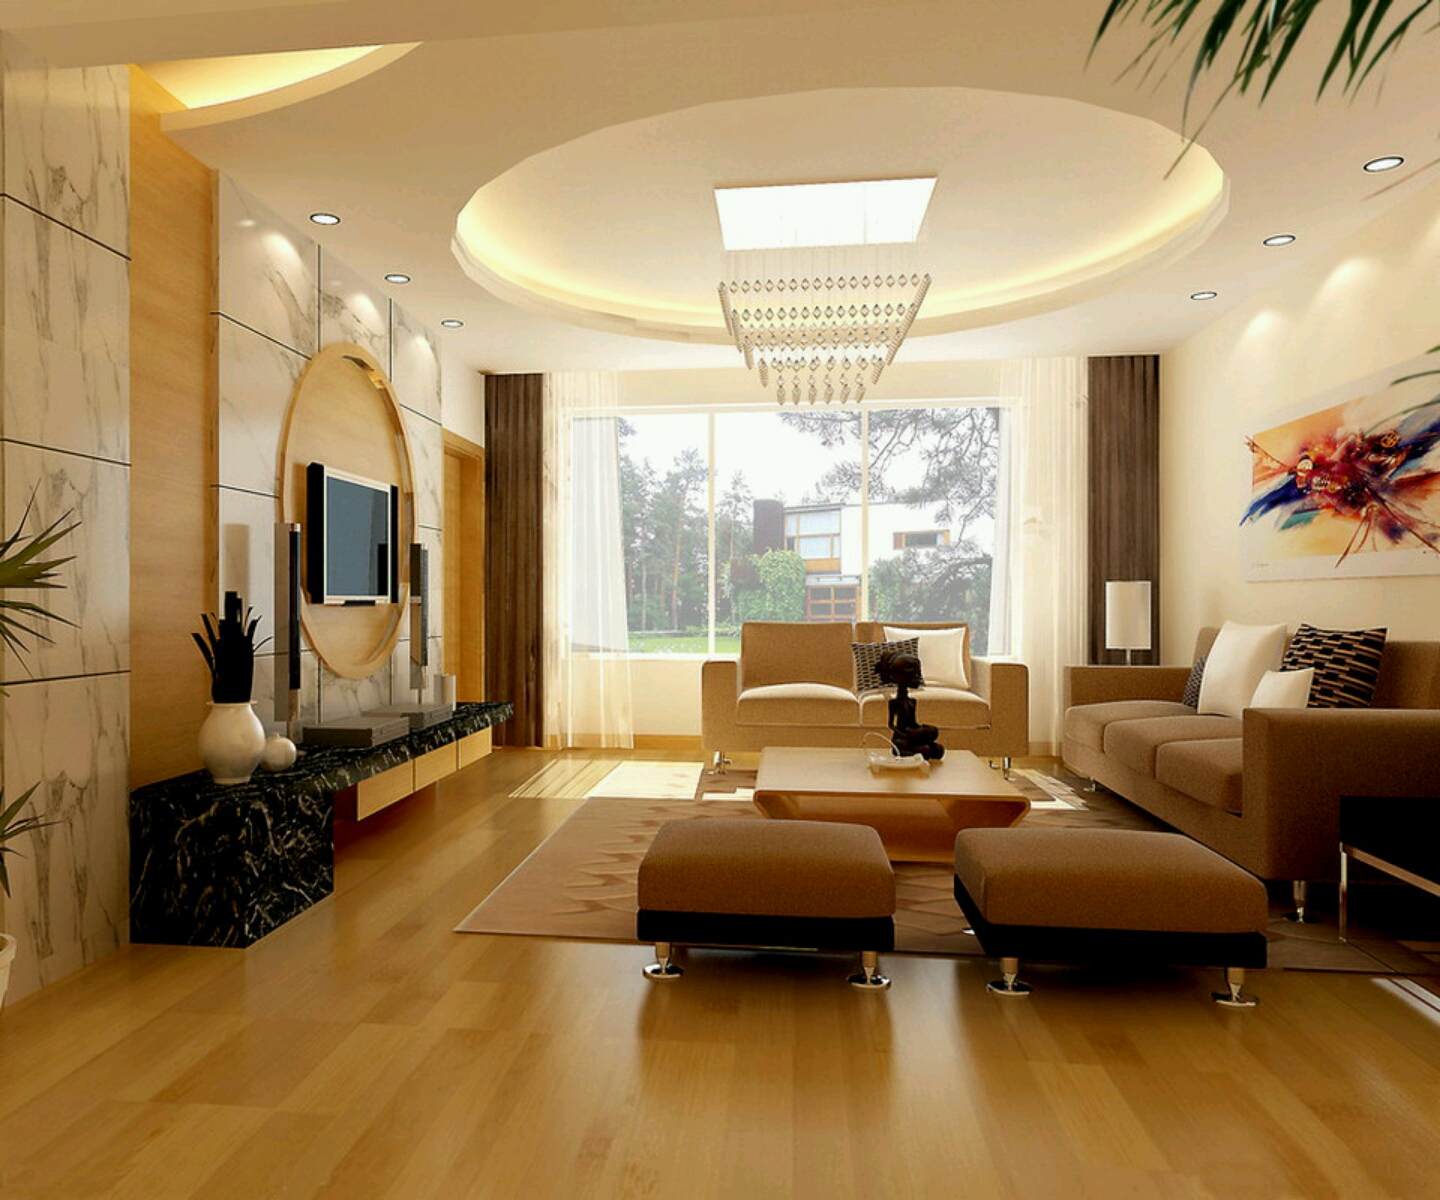 Modern interior decoration living rooms ceiling designs for Latest room interior